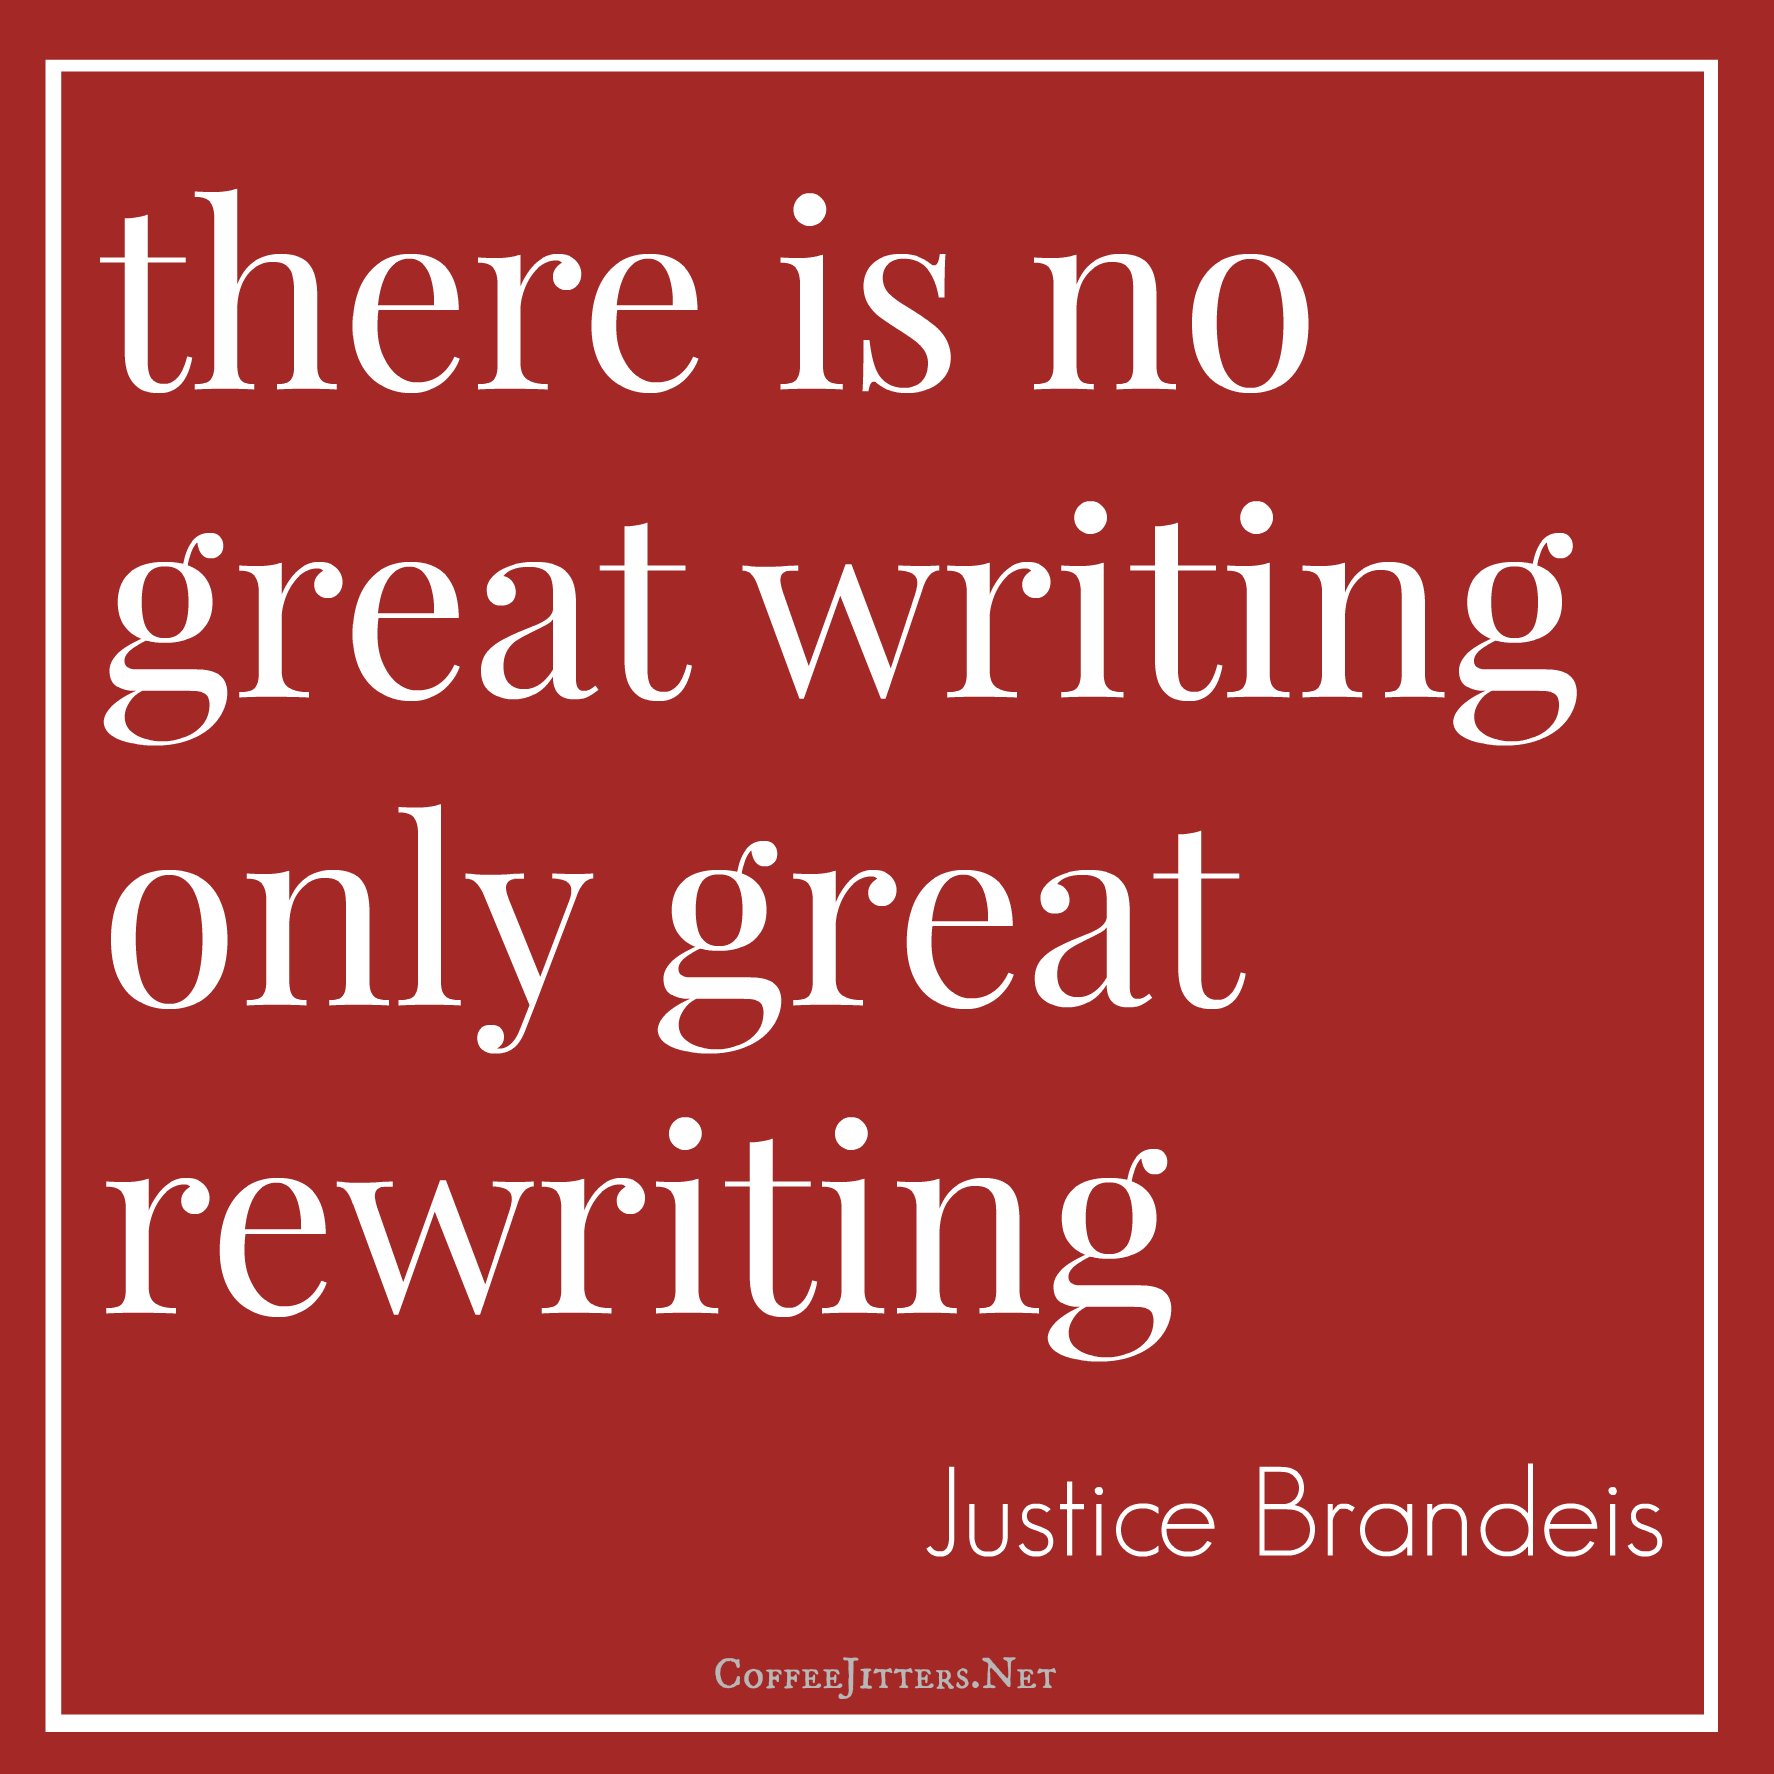 There is no great writing, only great rewriting